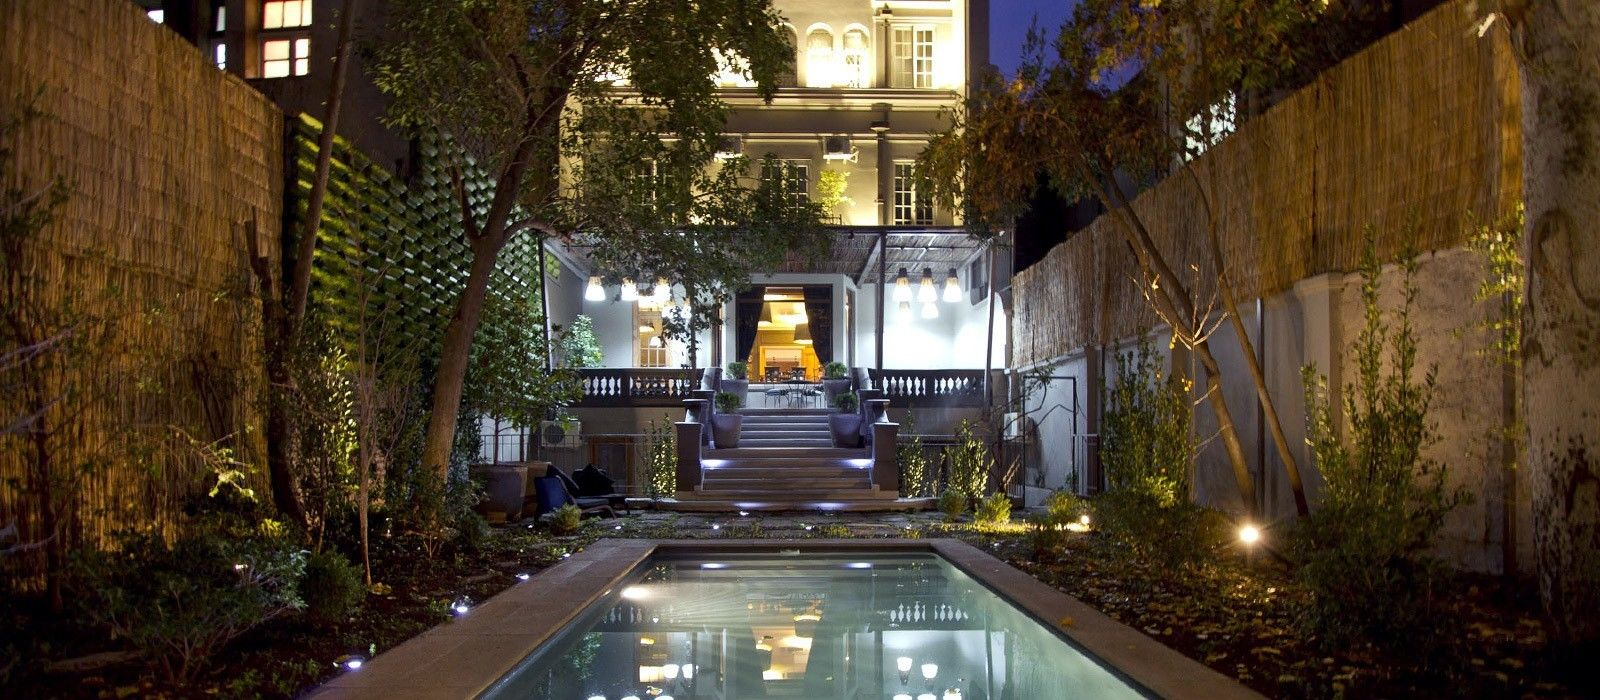 Top 10 unique boutique hotels enchanting travels for Best boutique hotels in us